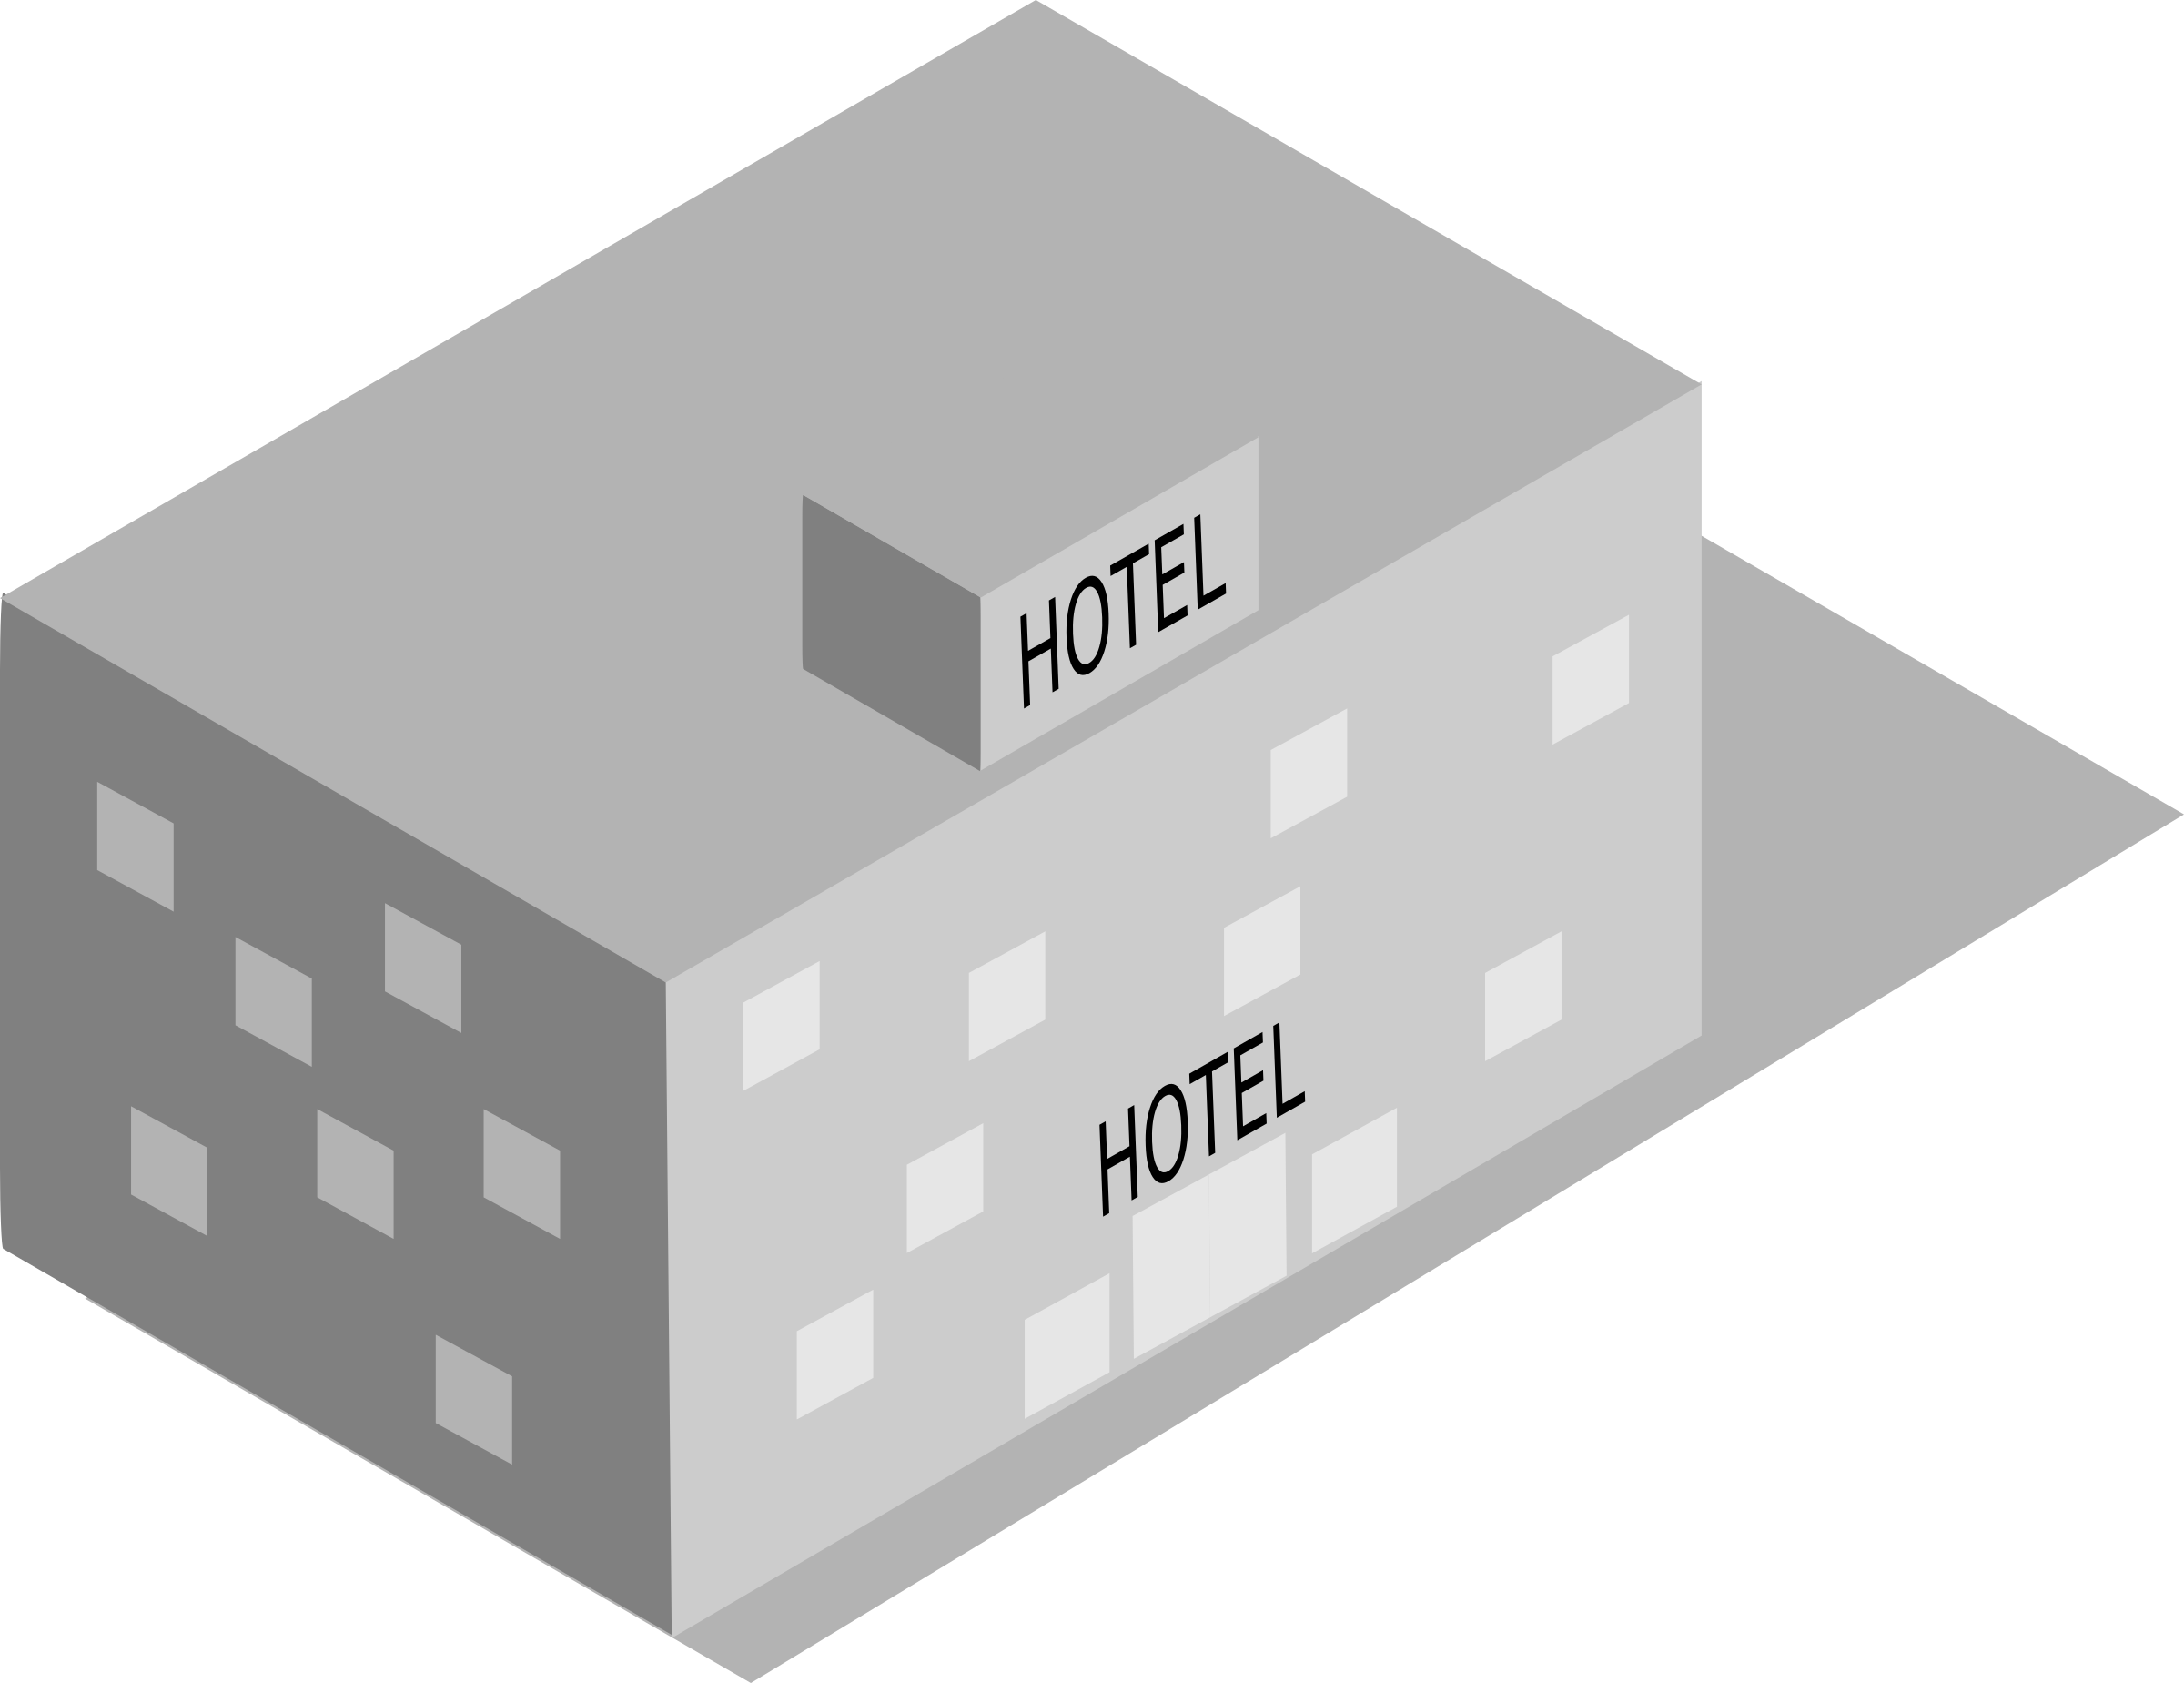 Big image png. Hotel clipart hotel building